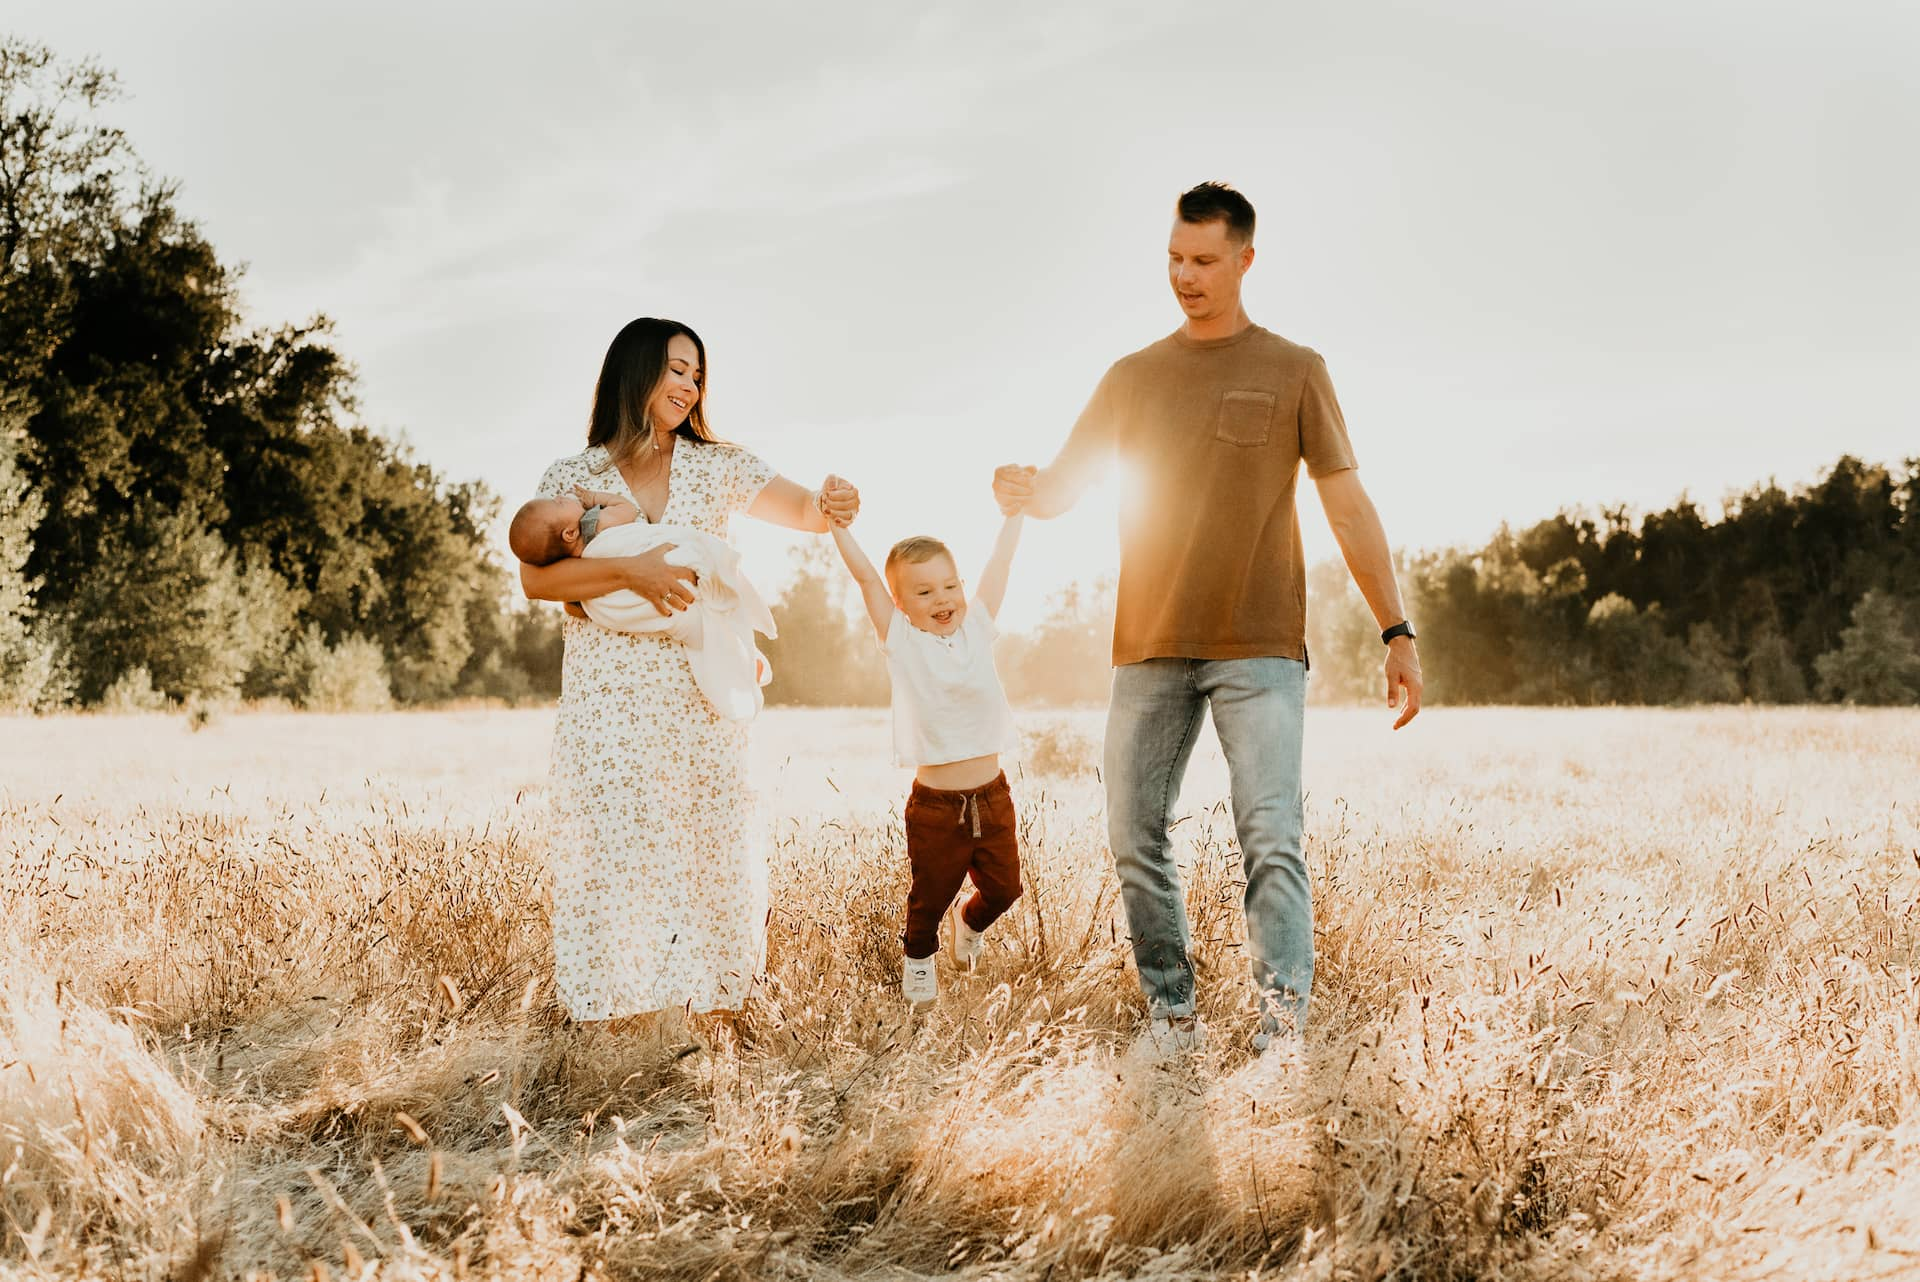 When is Magic Hour Photography - Golden Hour Lighting